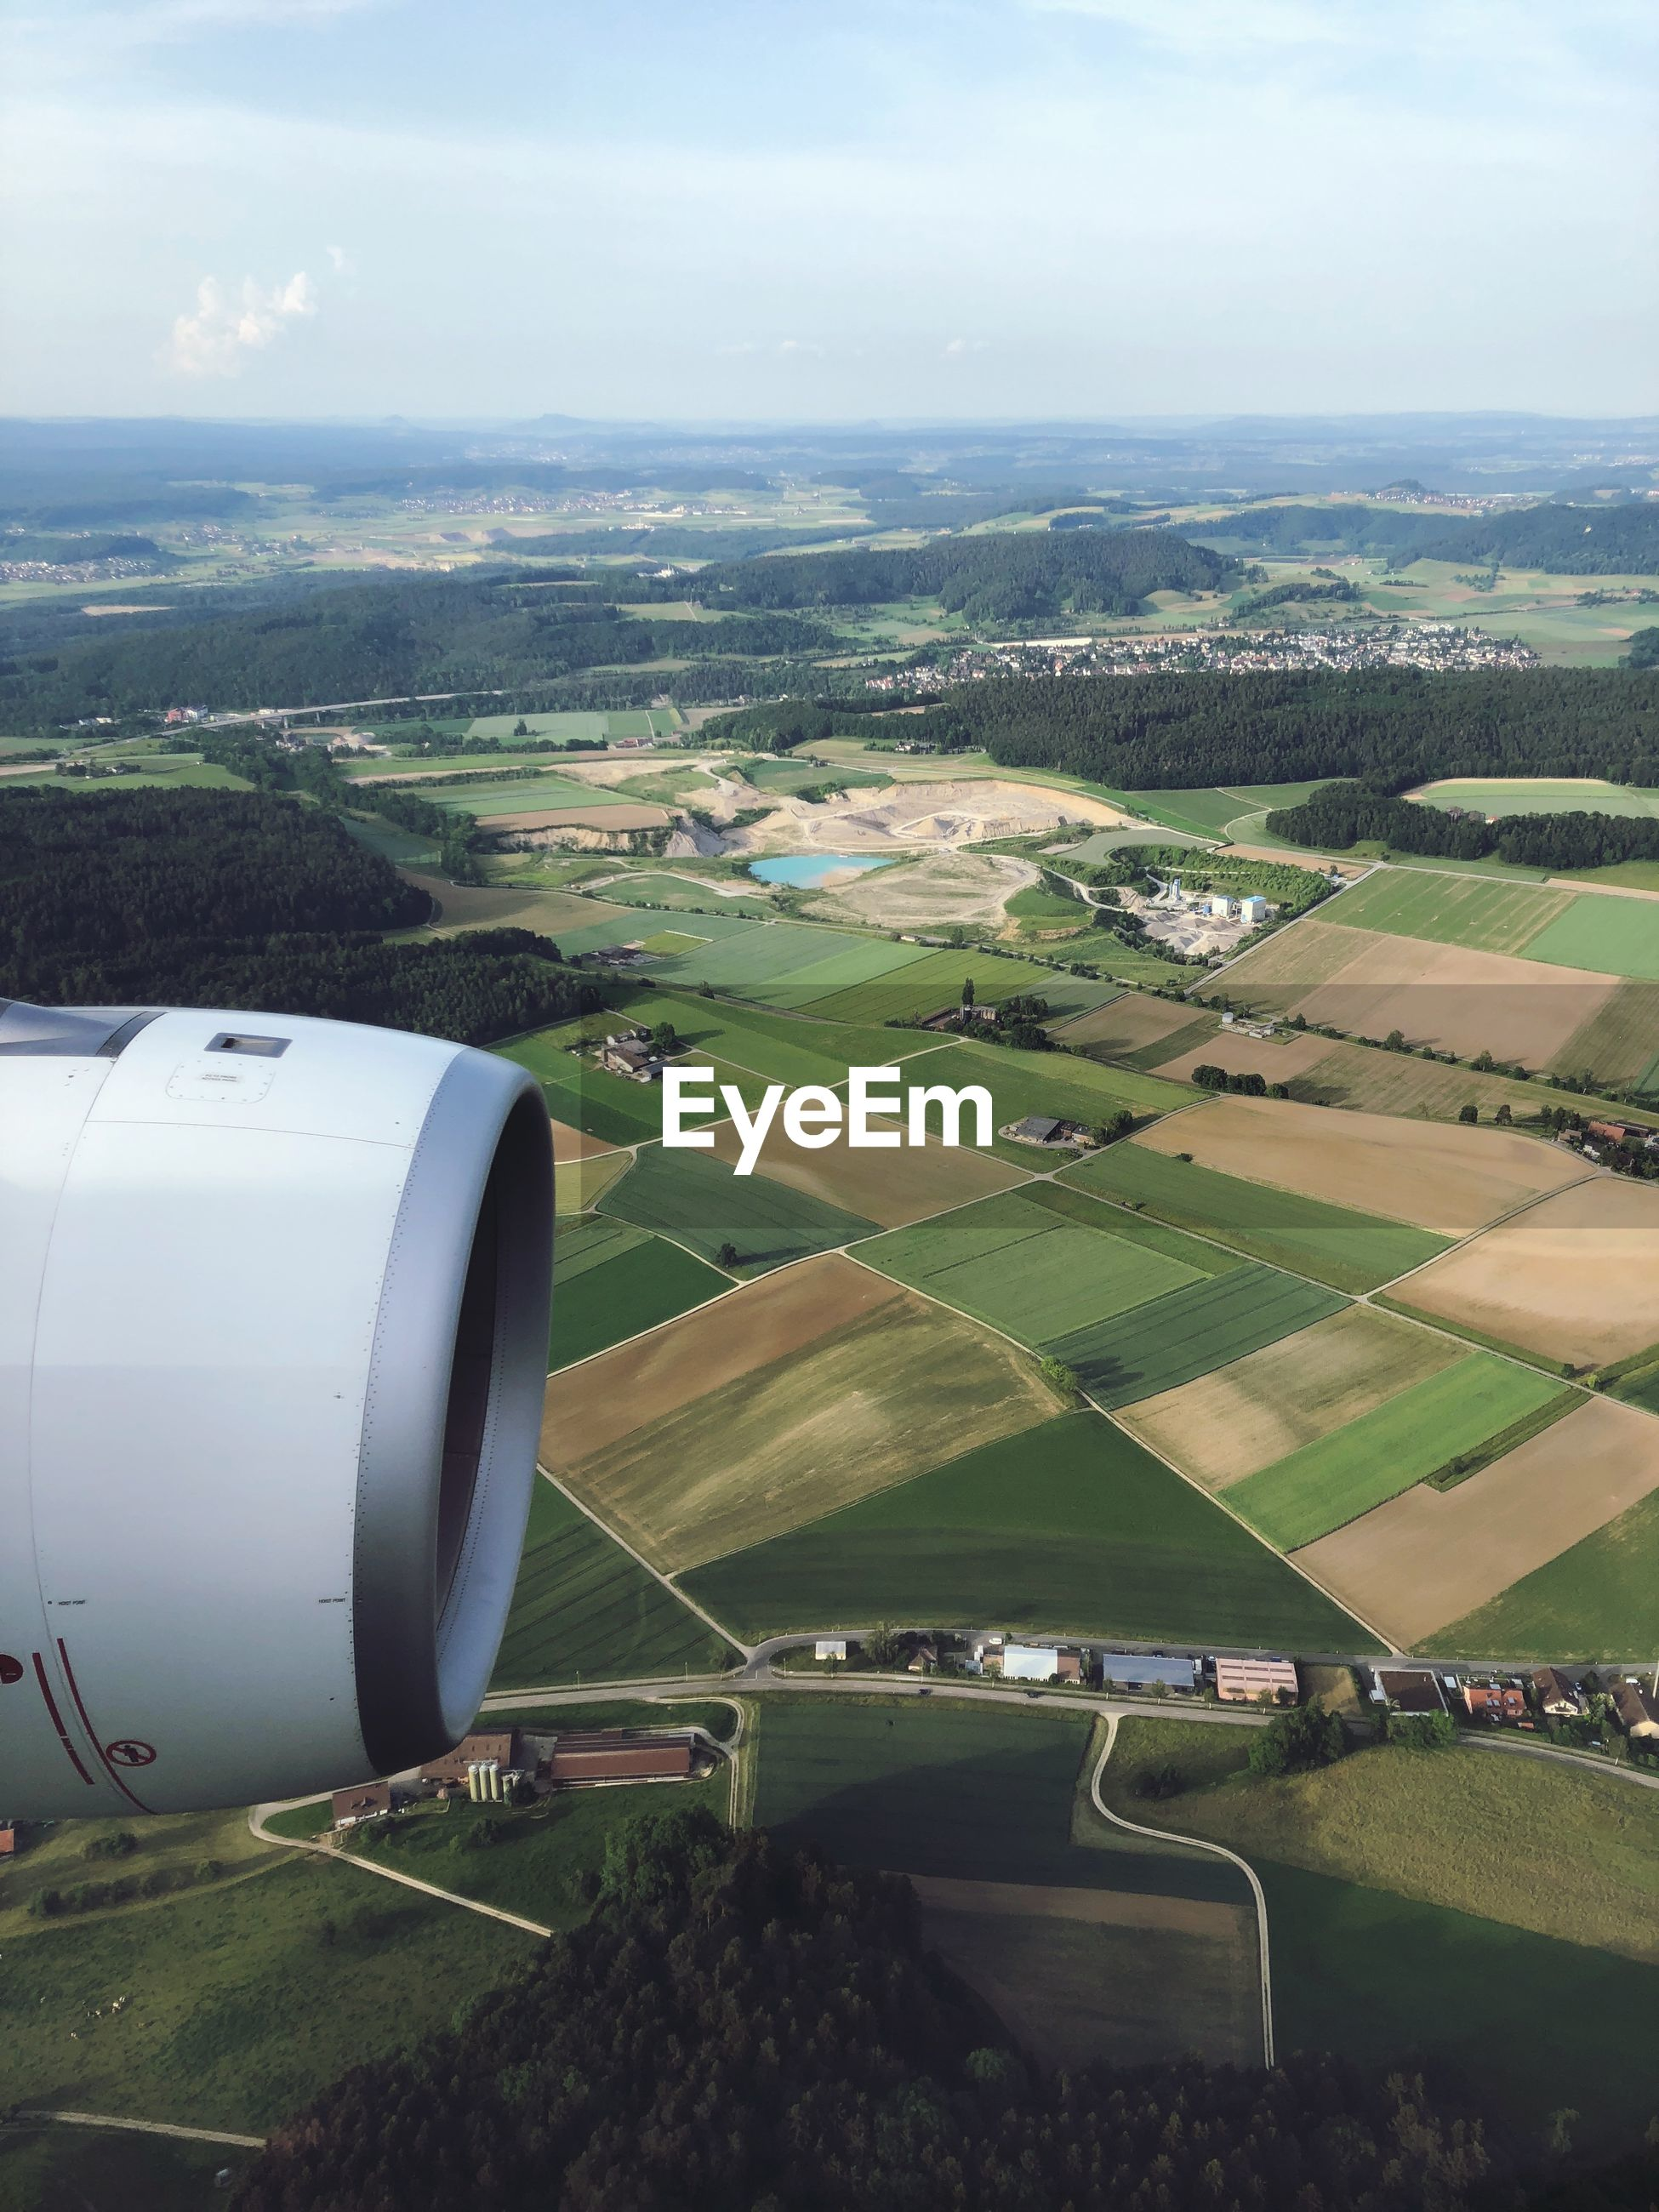 AERIAL VIEW OF LANDSCAPE SEEN THROUGH AIRPLANE